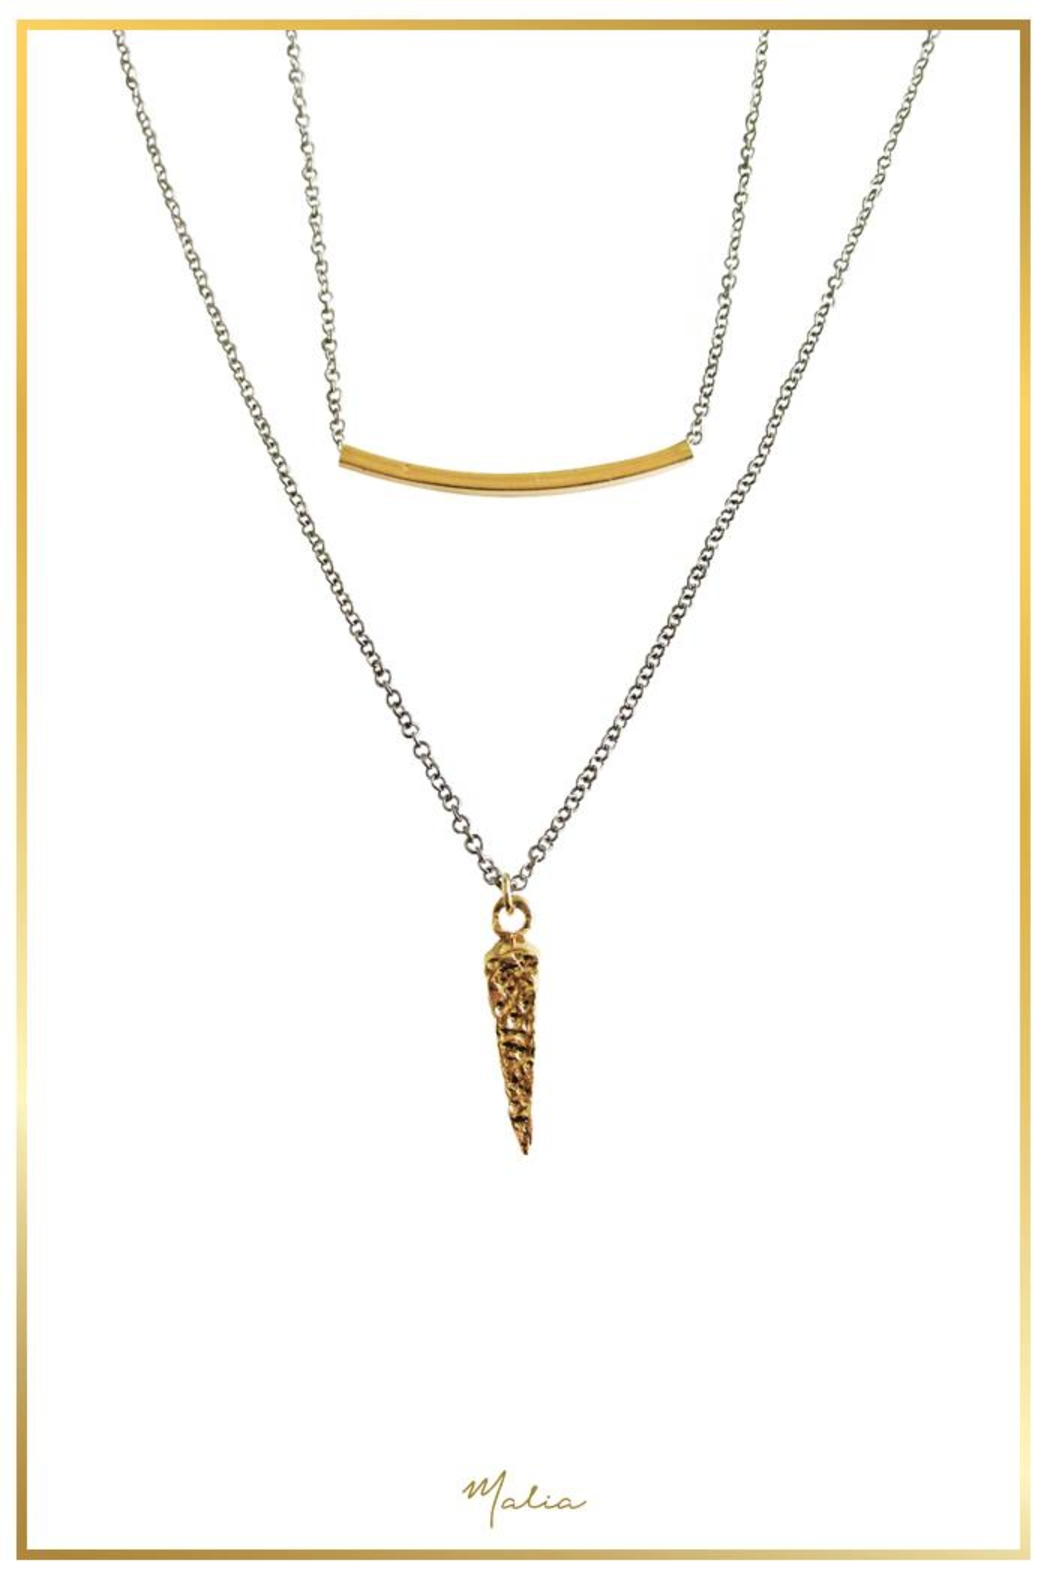 Malia Jewelry Double Layer Charm Necklace - Main Image